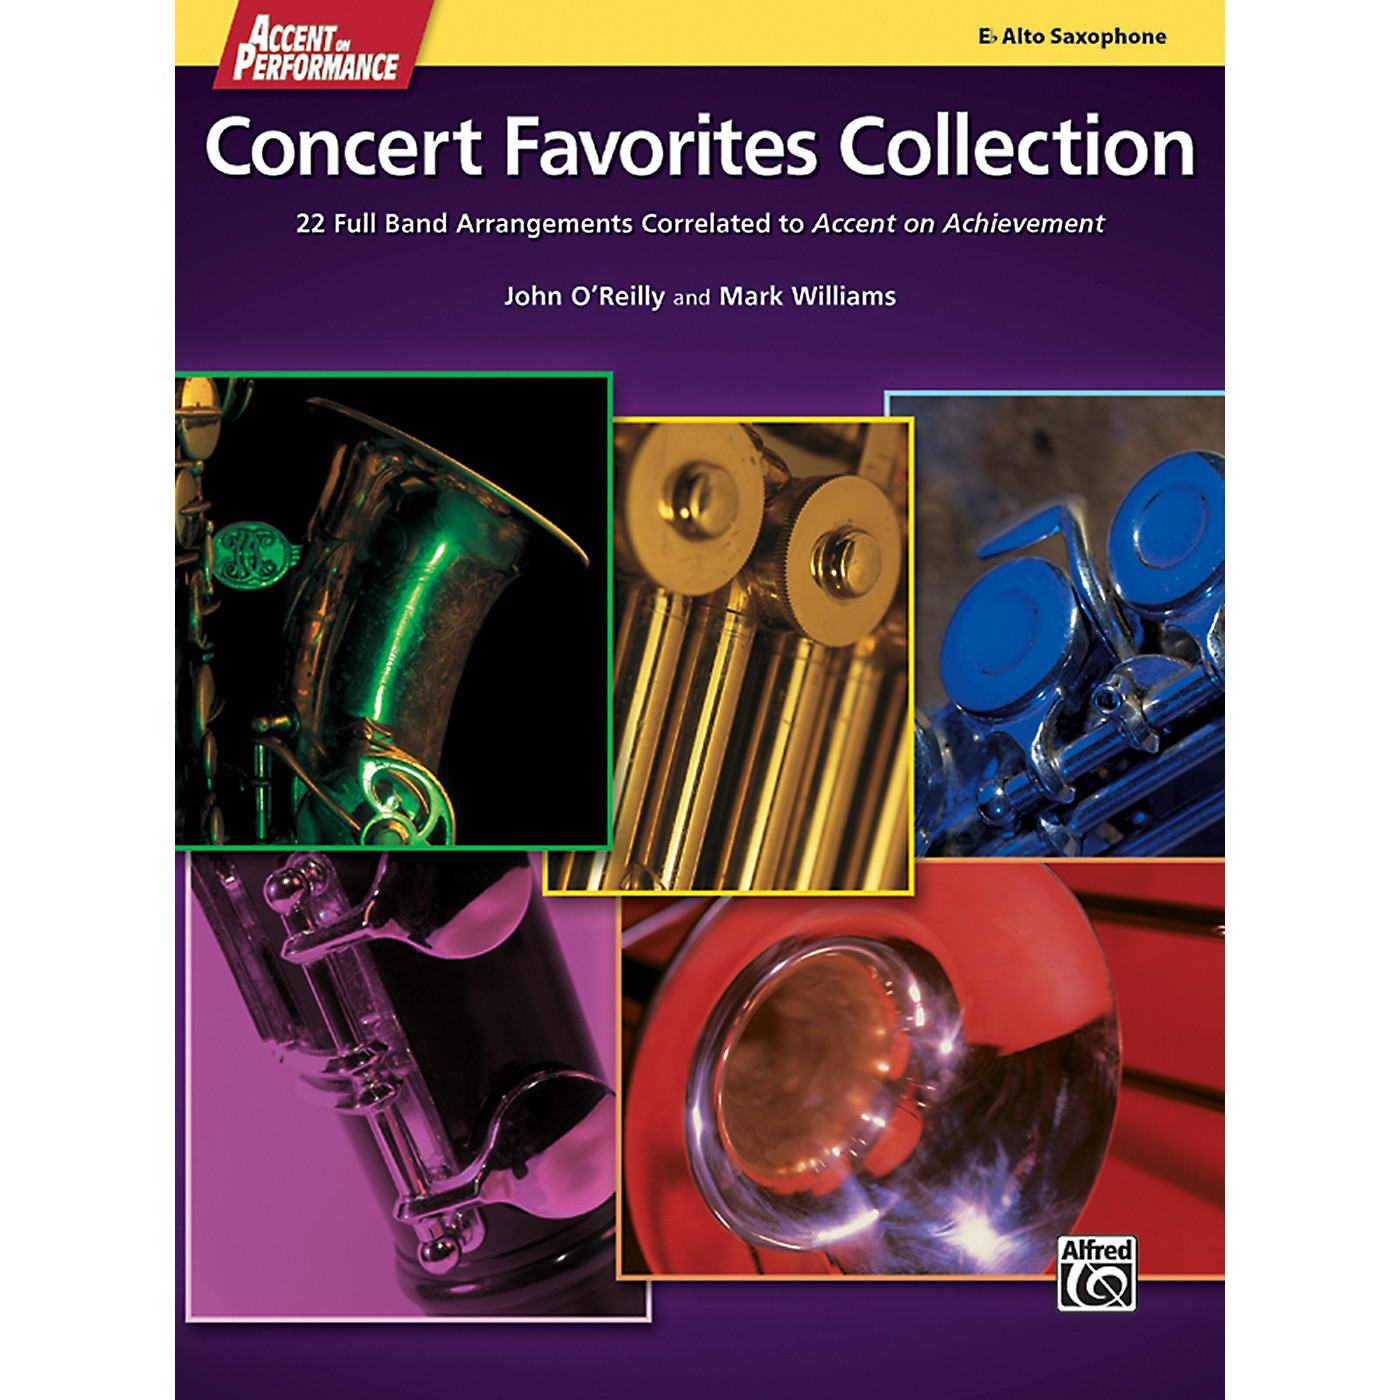 Alfred Accent on Performance Concert Favorites Collection Alto Sax Book thumbnail